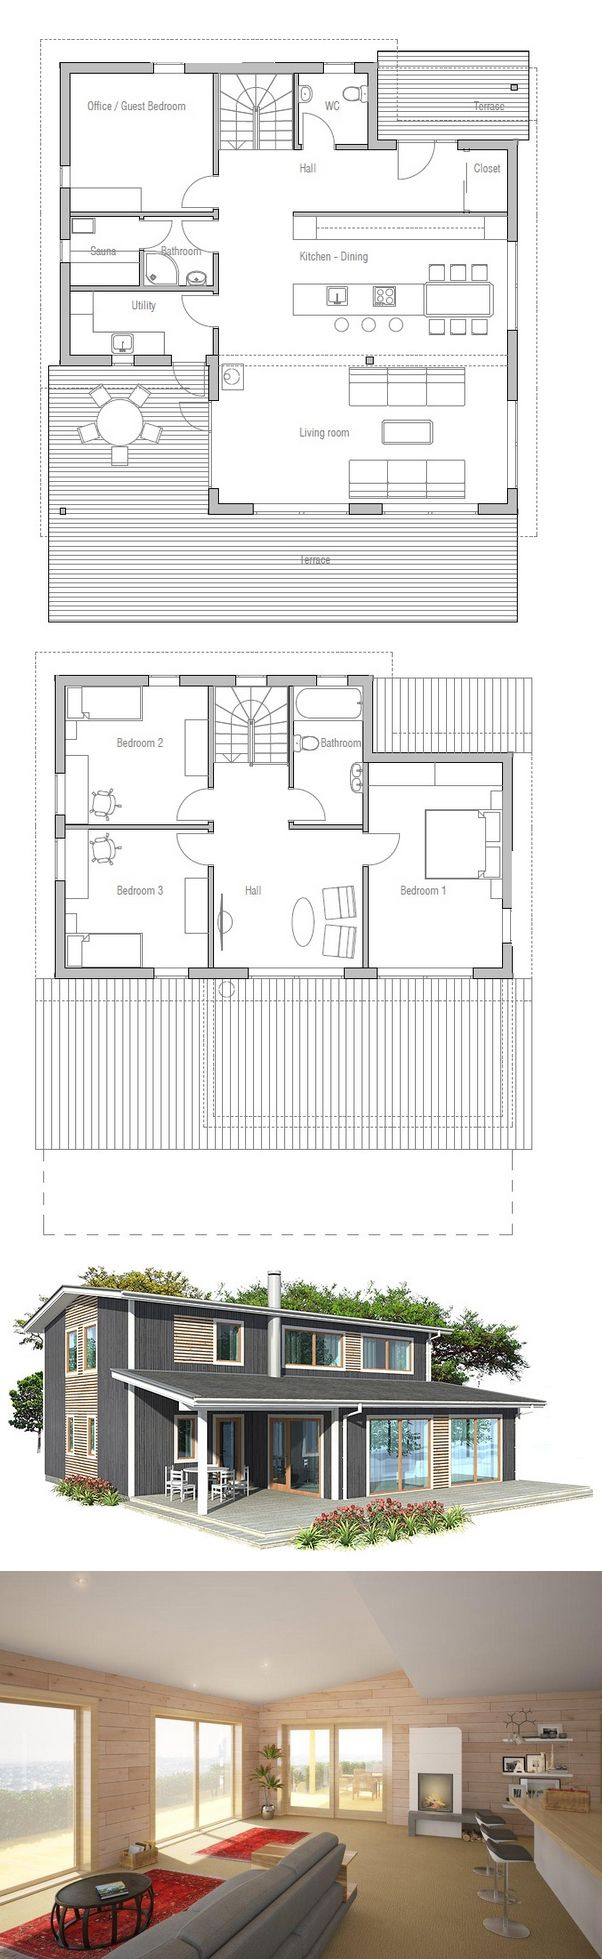 153 best arch resi plans images on pinterest architecture house plan small house new home